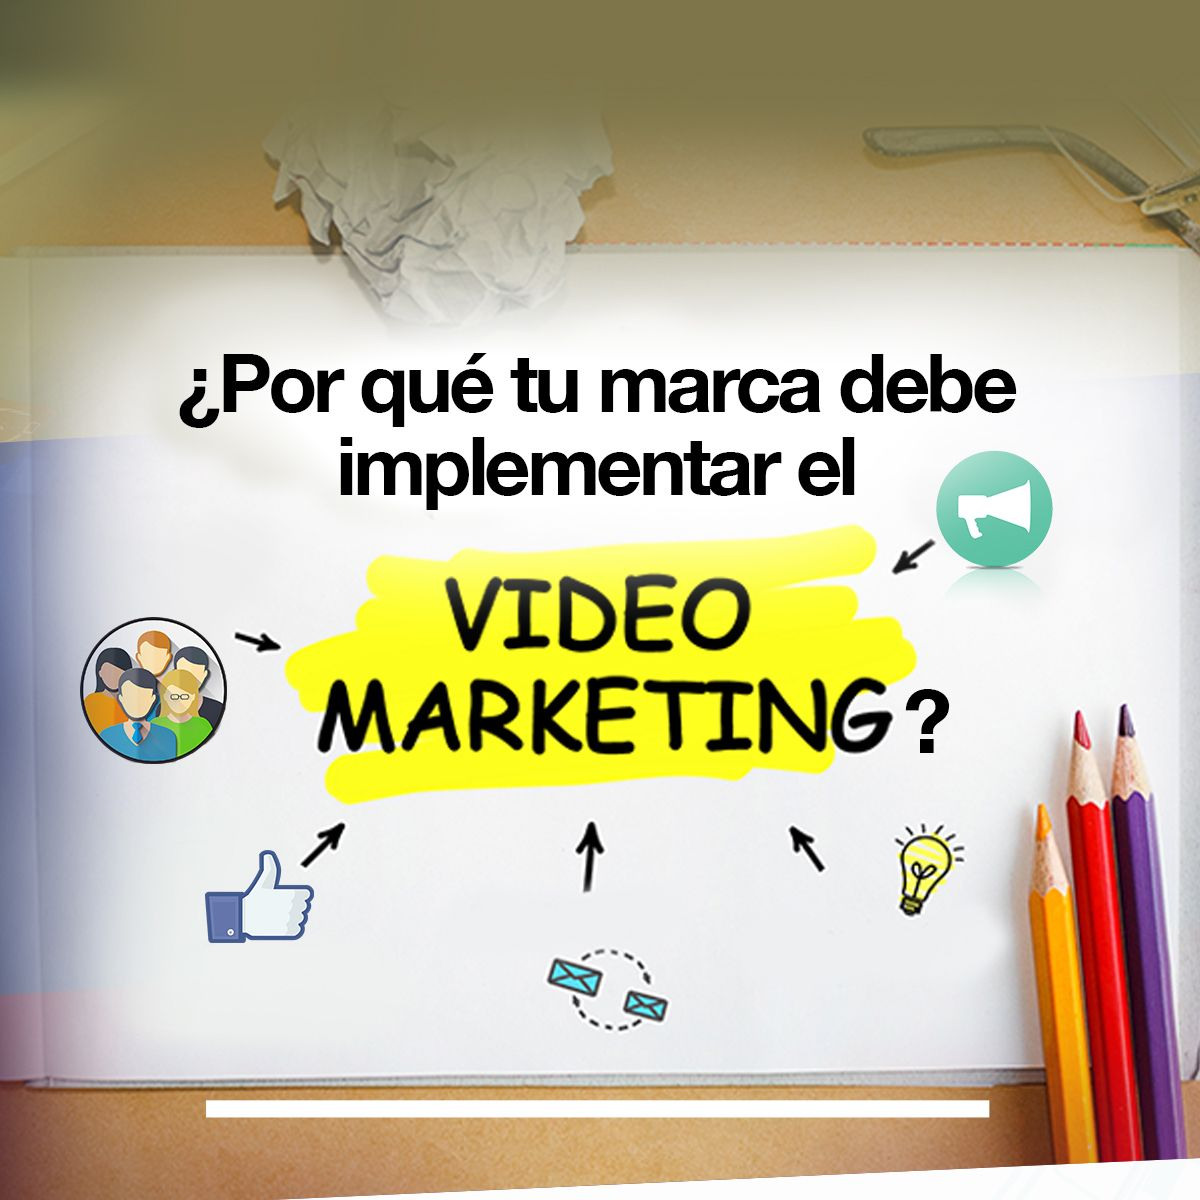 ¿Por qué tu marca debe implementar el video marketing?